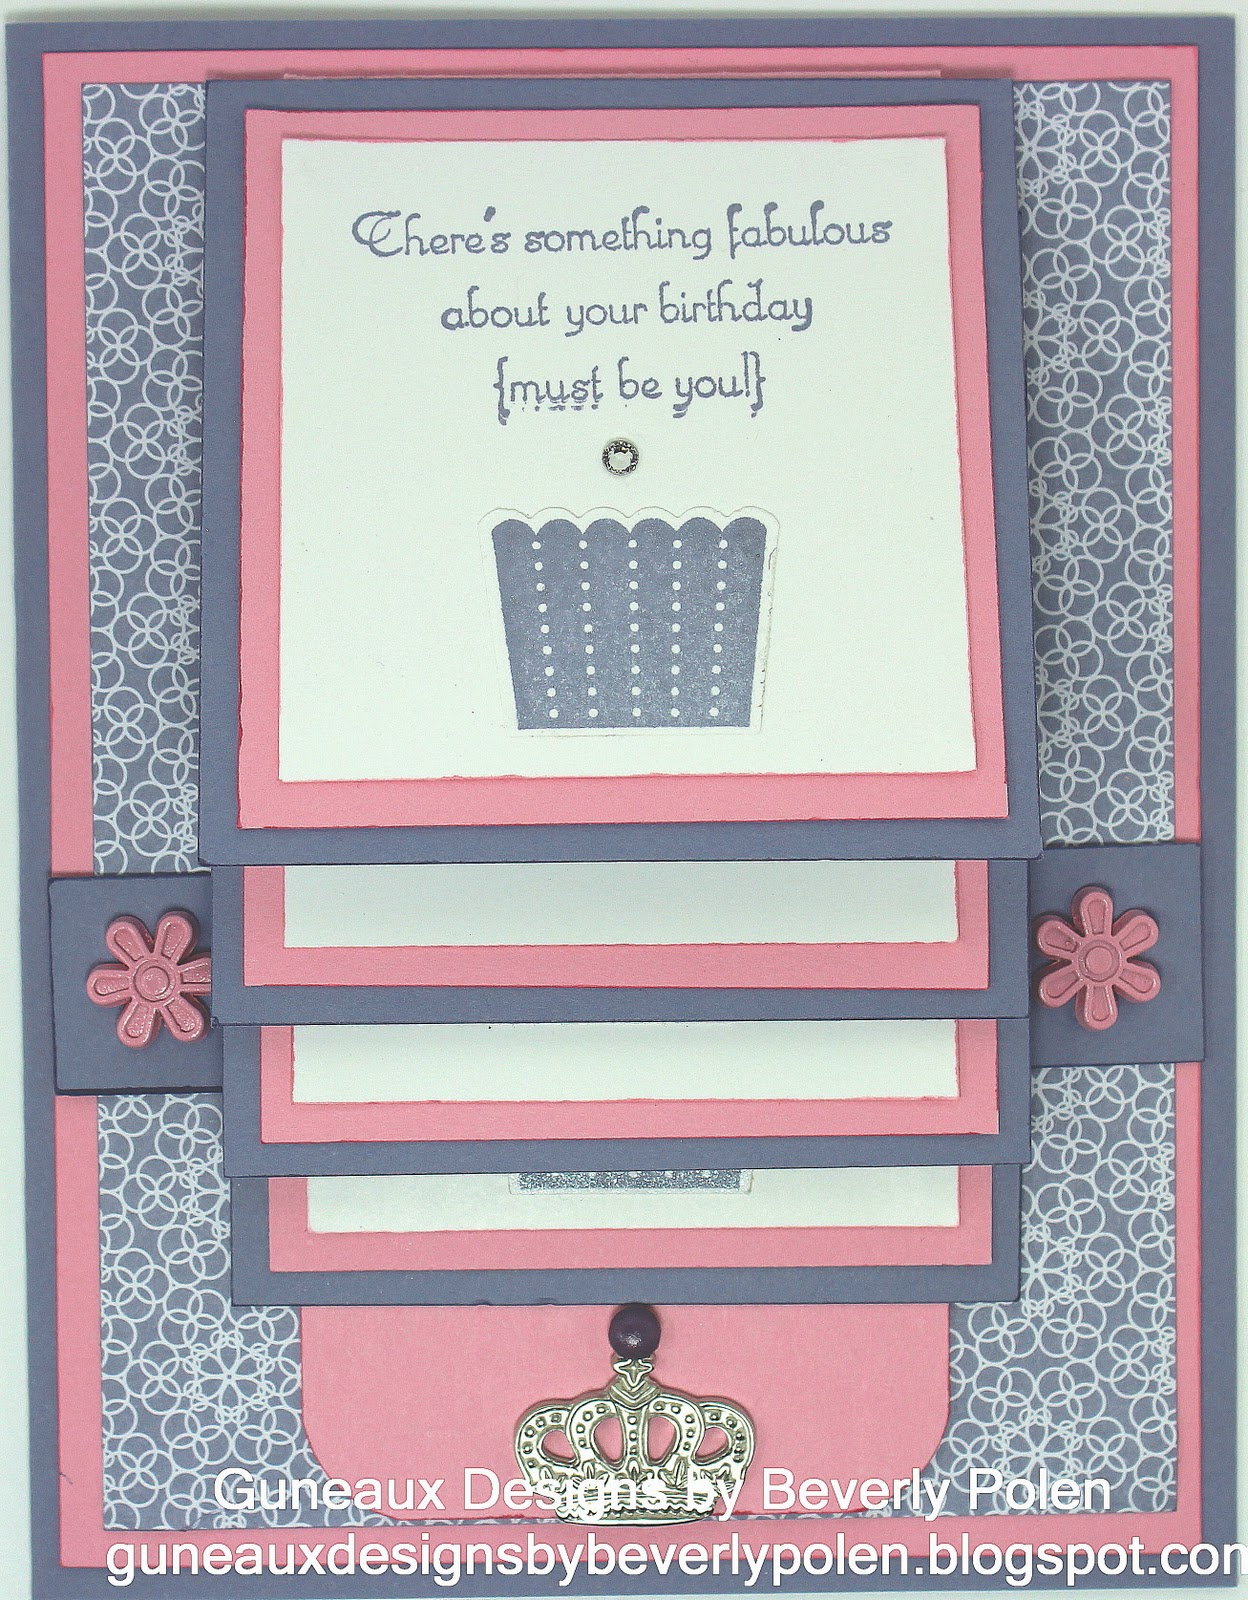 Guneaux Designs by Beverly Polen: How to Make a Waterfall Card